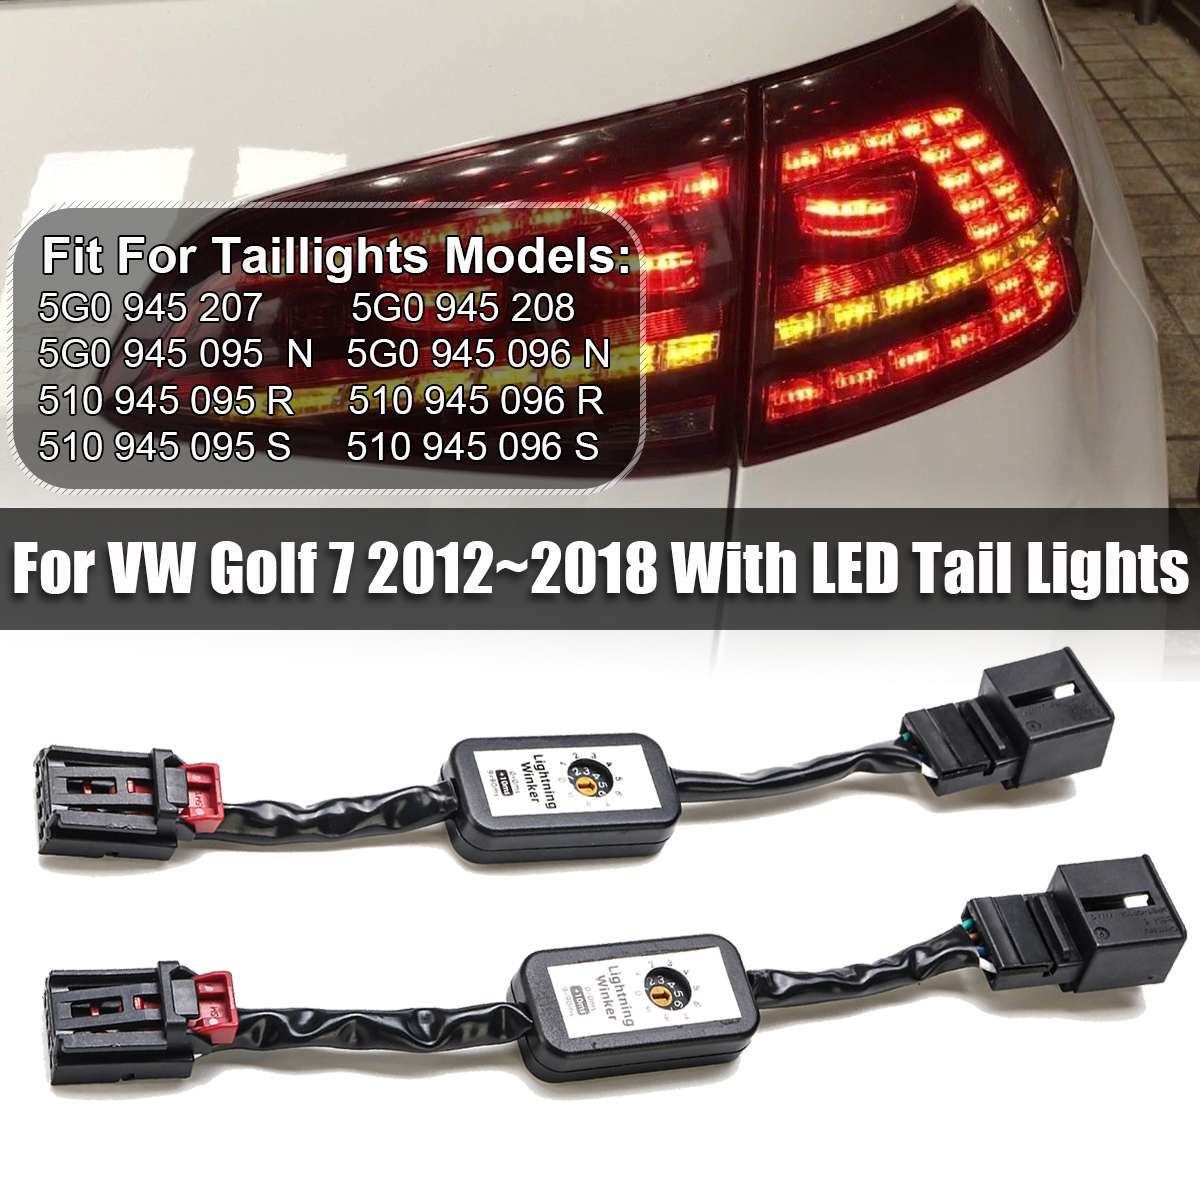 Cable-Wire Taillight Dynamic Turn-Signal-Indicator VW Golf-7 Harnes 2pcs LED For Golf-7/Left/Right